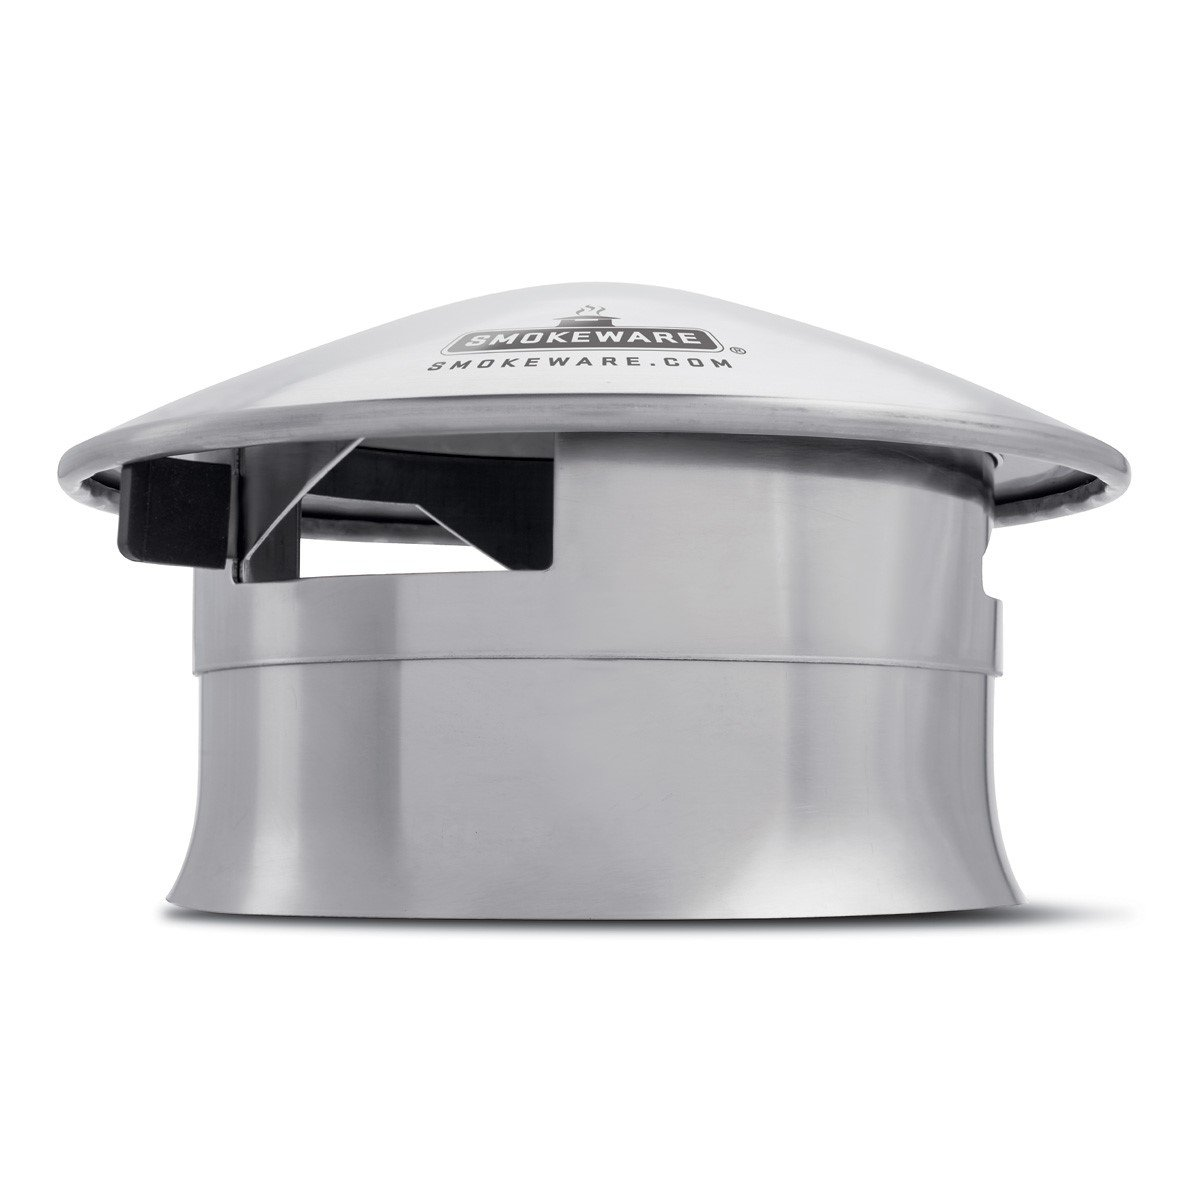 SmokeWare Vented Chimney Cap - Compatible with The Big Green Egg, Stainless Steel Replacement Accessory